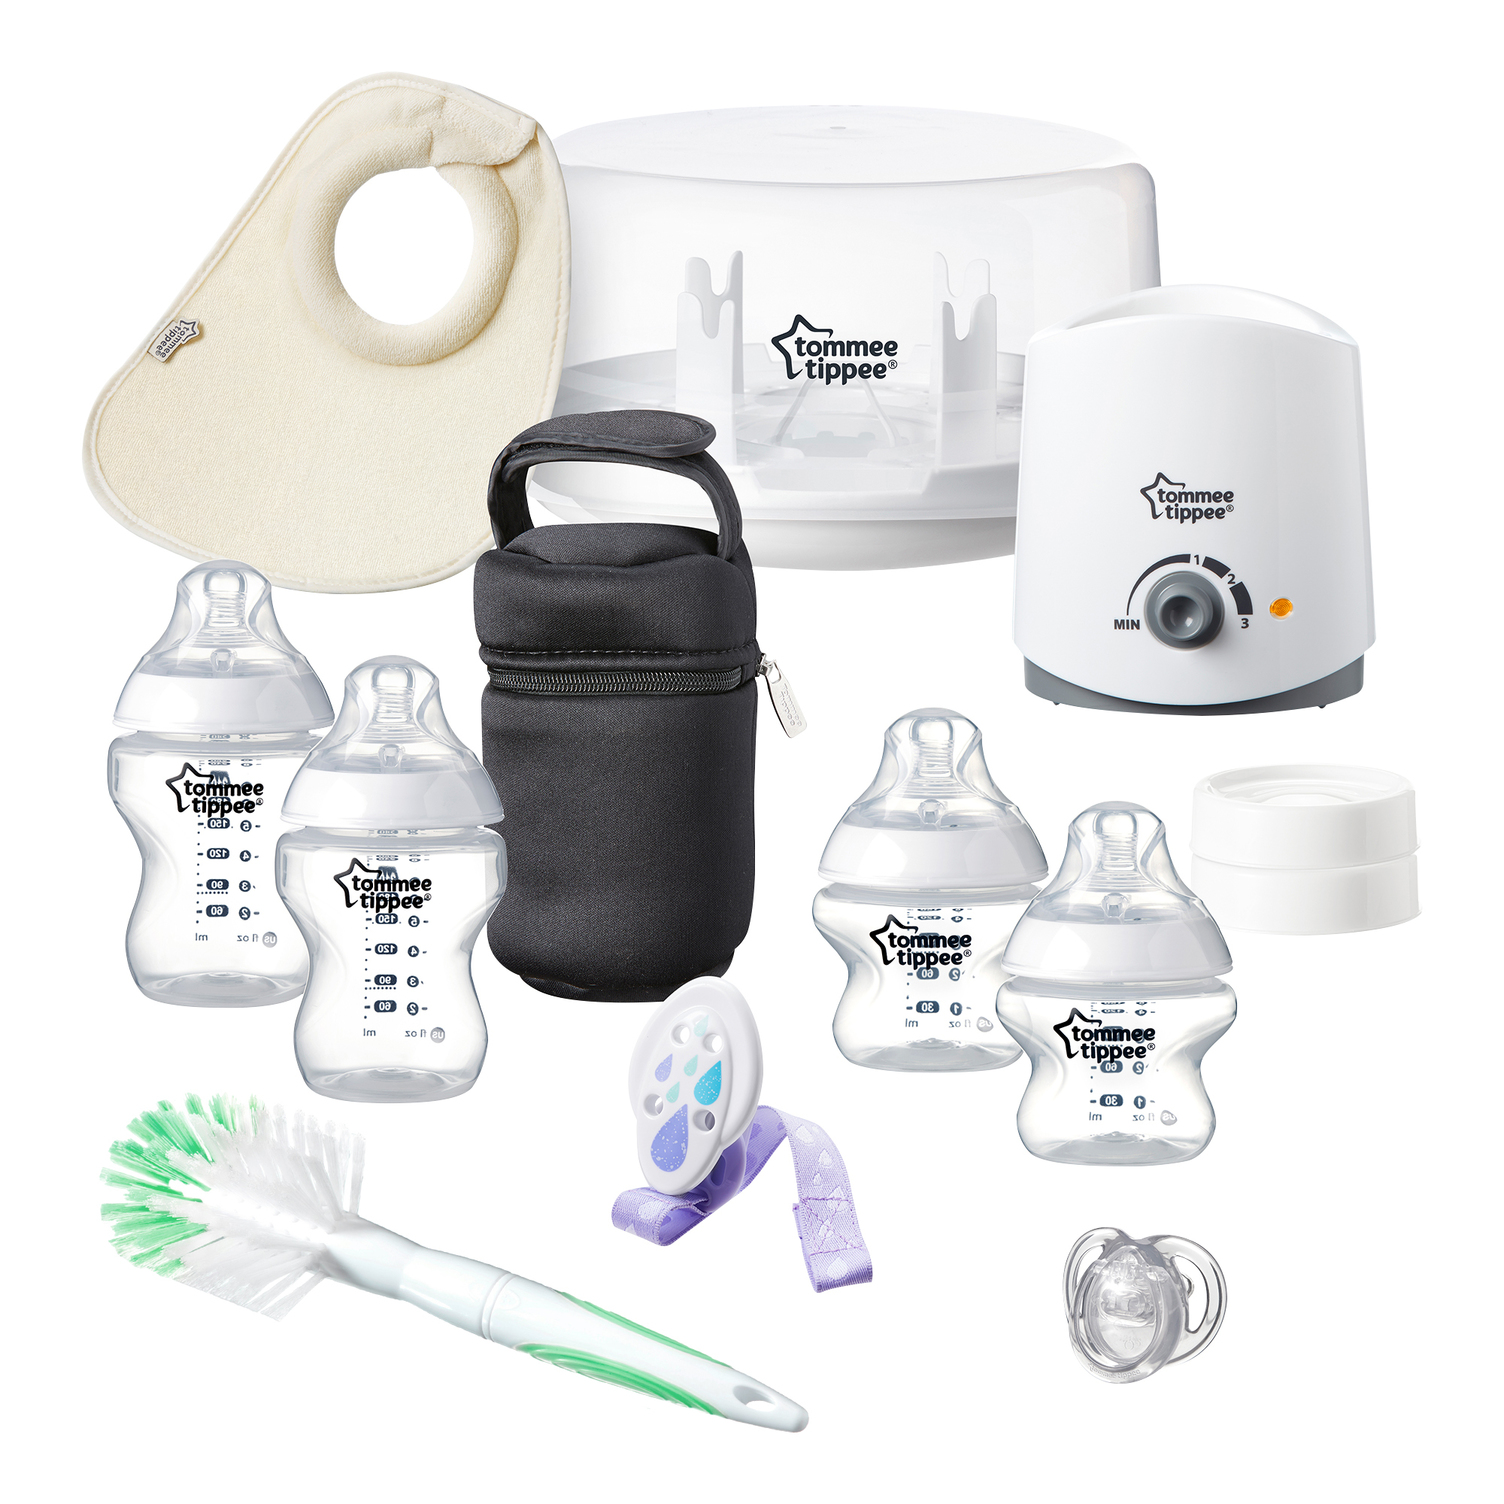 Tommee Tippee Closer to Nature All in One Newborn Baby Feeding Starter Set by Tommee Tippee